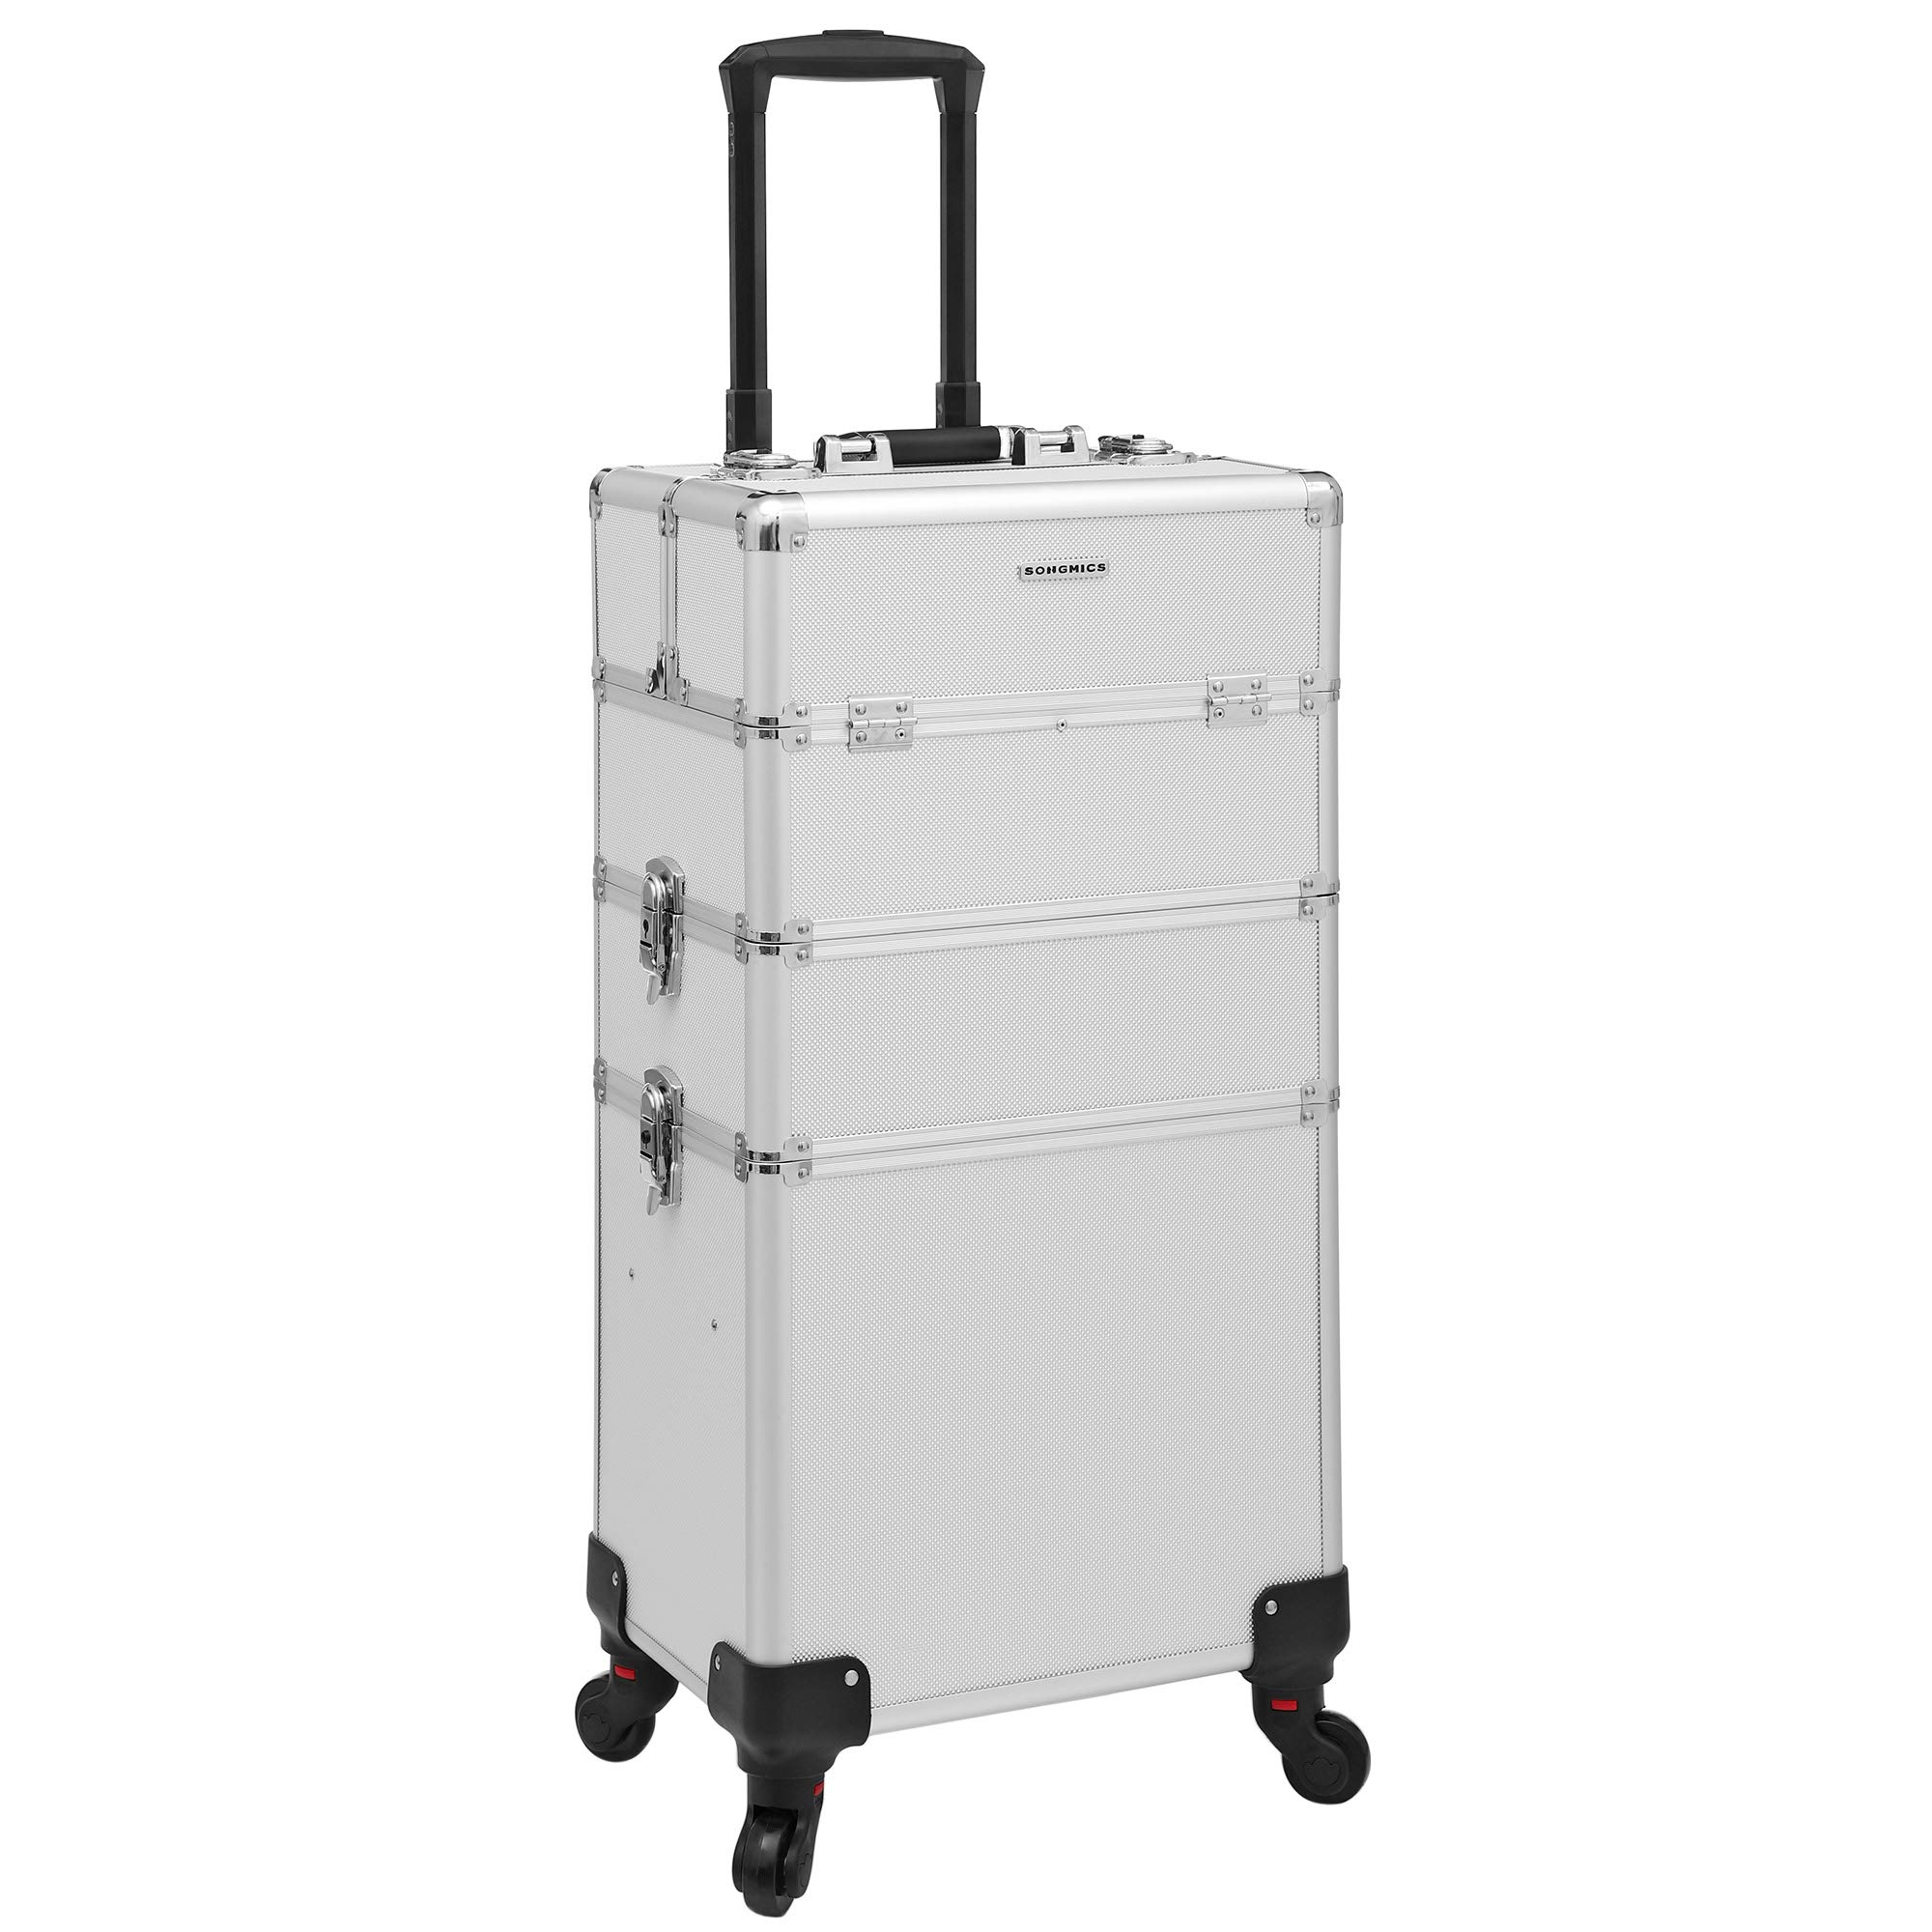 a77d321bc Songmics® beauty case Maleta multiusos tipo trolley Maletín para maquillaje  Estuche de maquillaje JHZ01S product